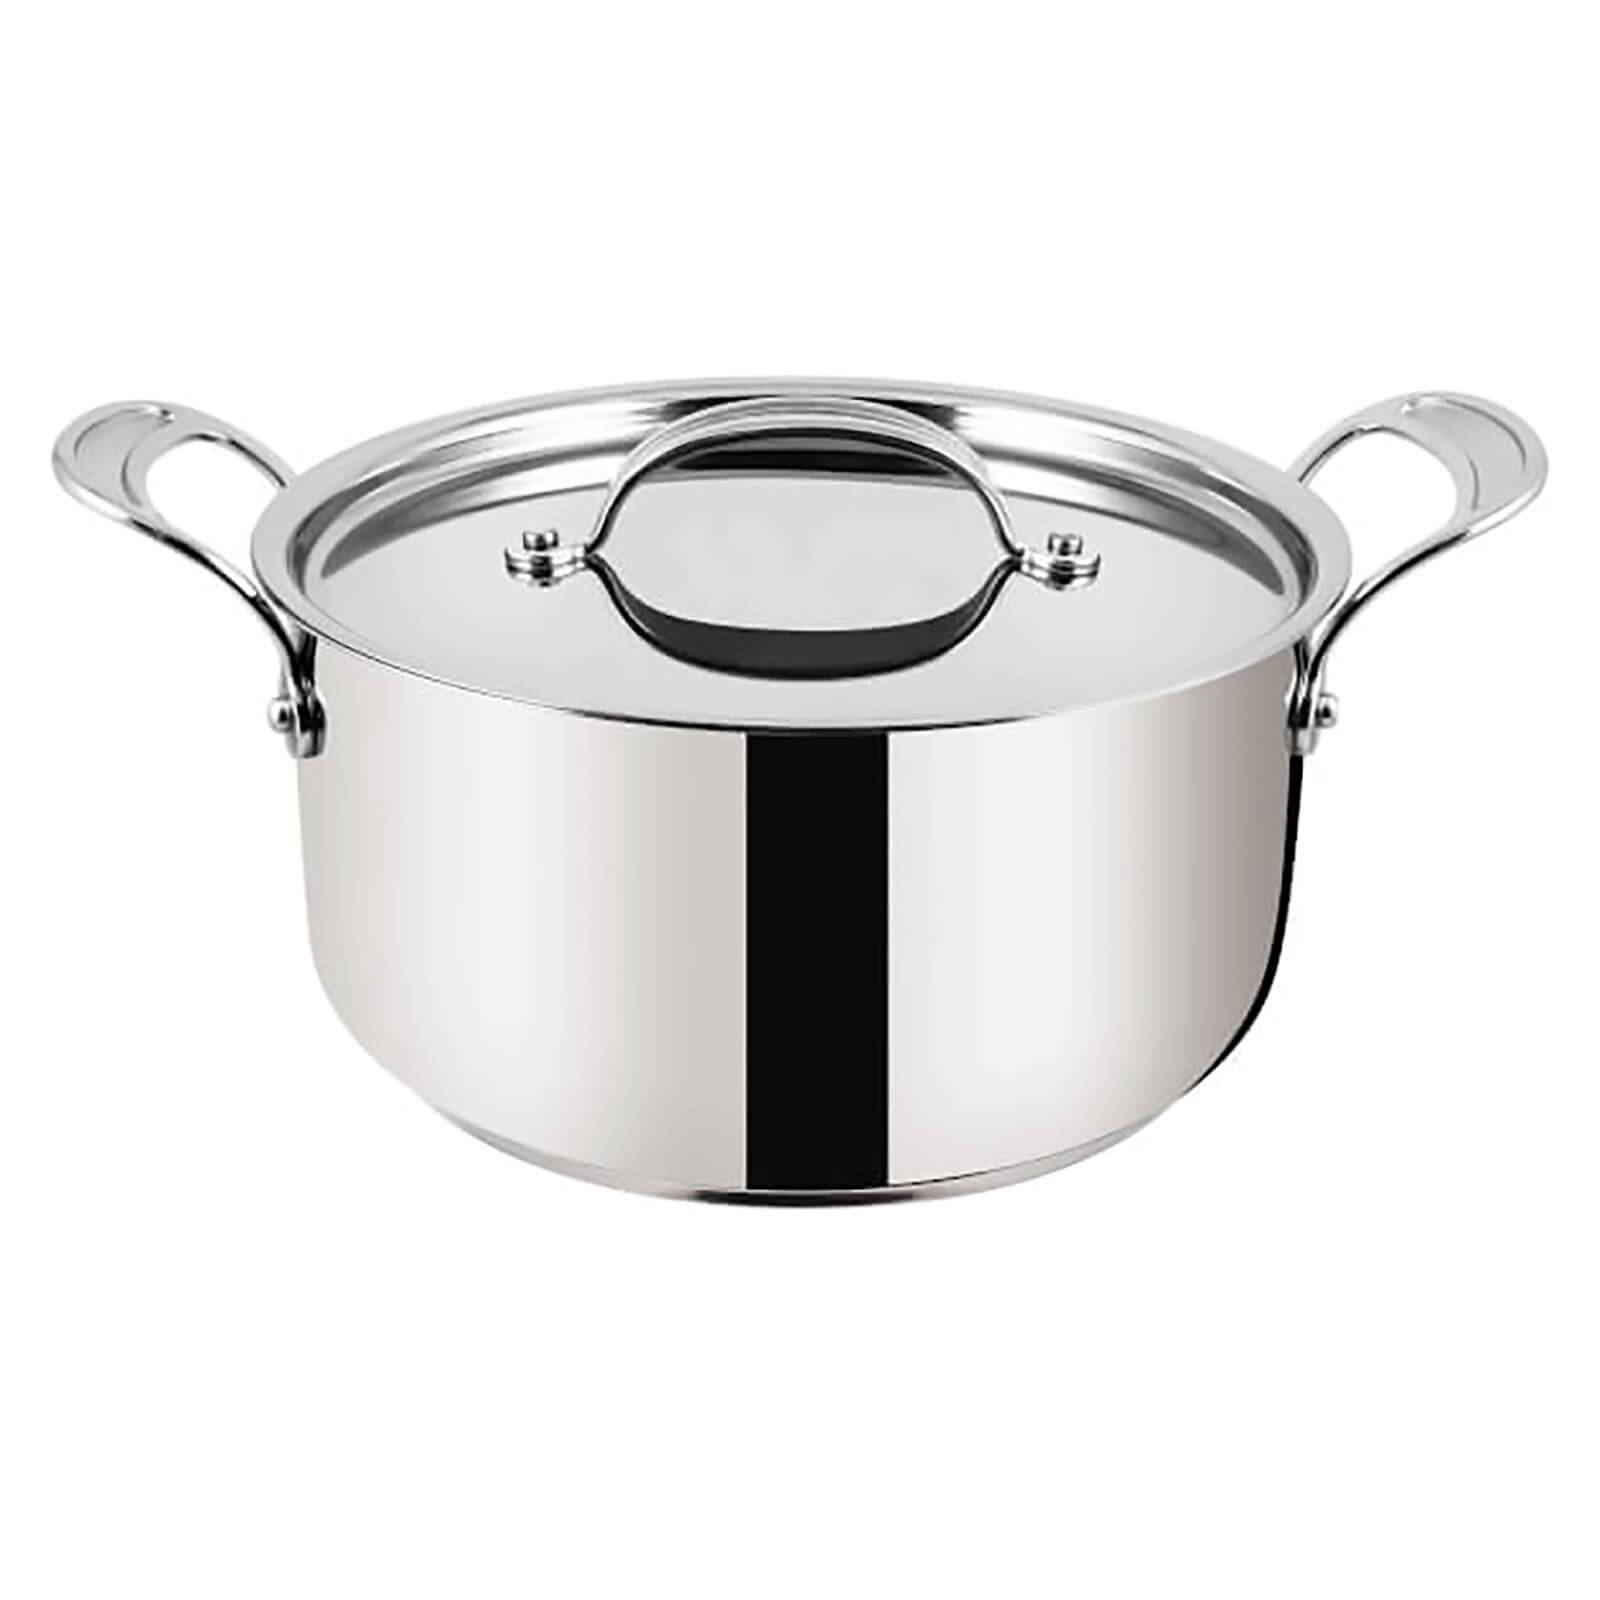 Tefal Jamie Oliver by Tefal H8044644 24cm Stainless Steel Non-Stick Stewpot With Lid - 24cm